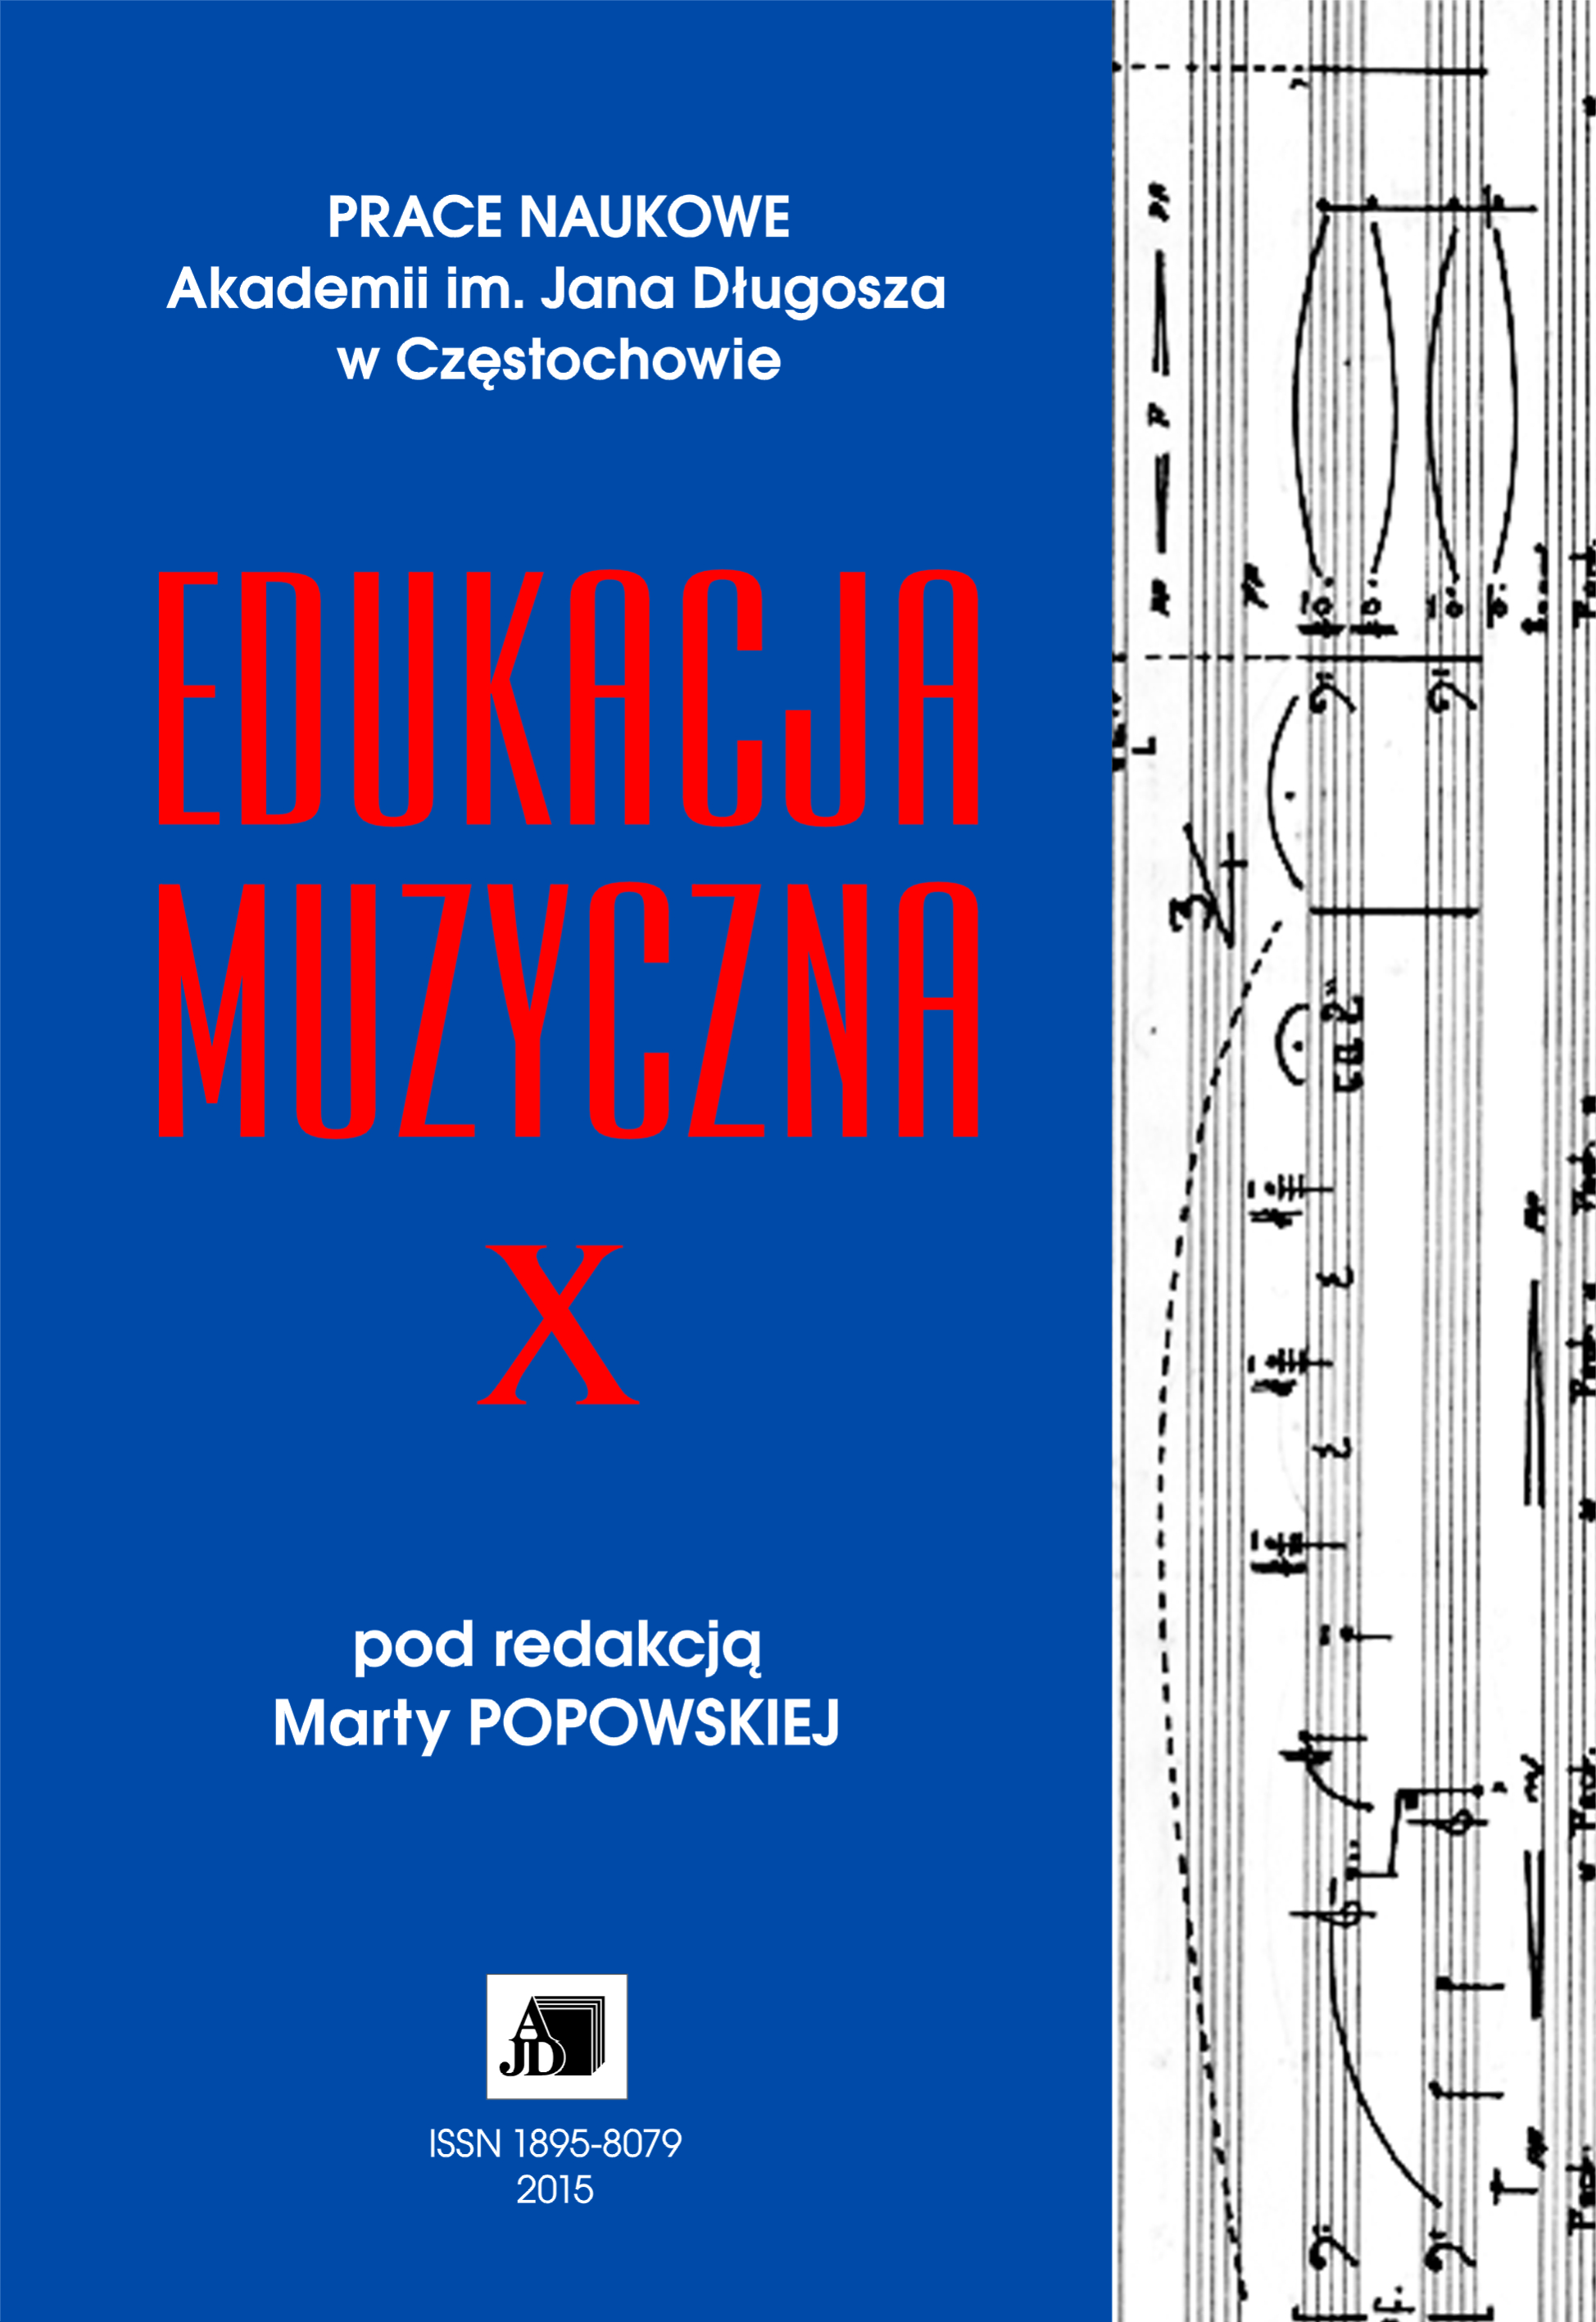 Research Papers of the Jan Dlugosz University in Częstochowa. Musical Education Cover Image